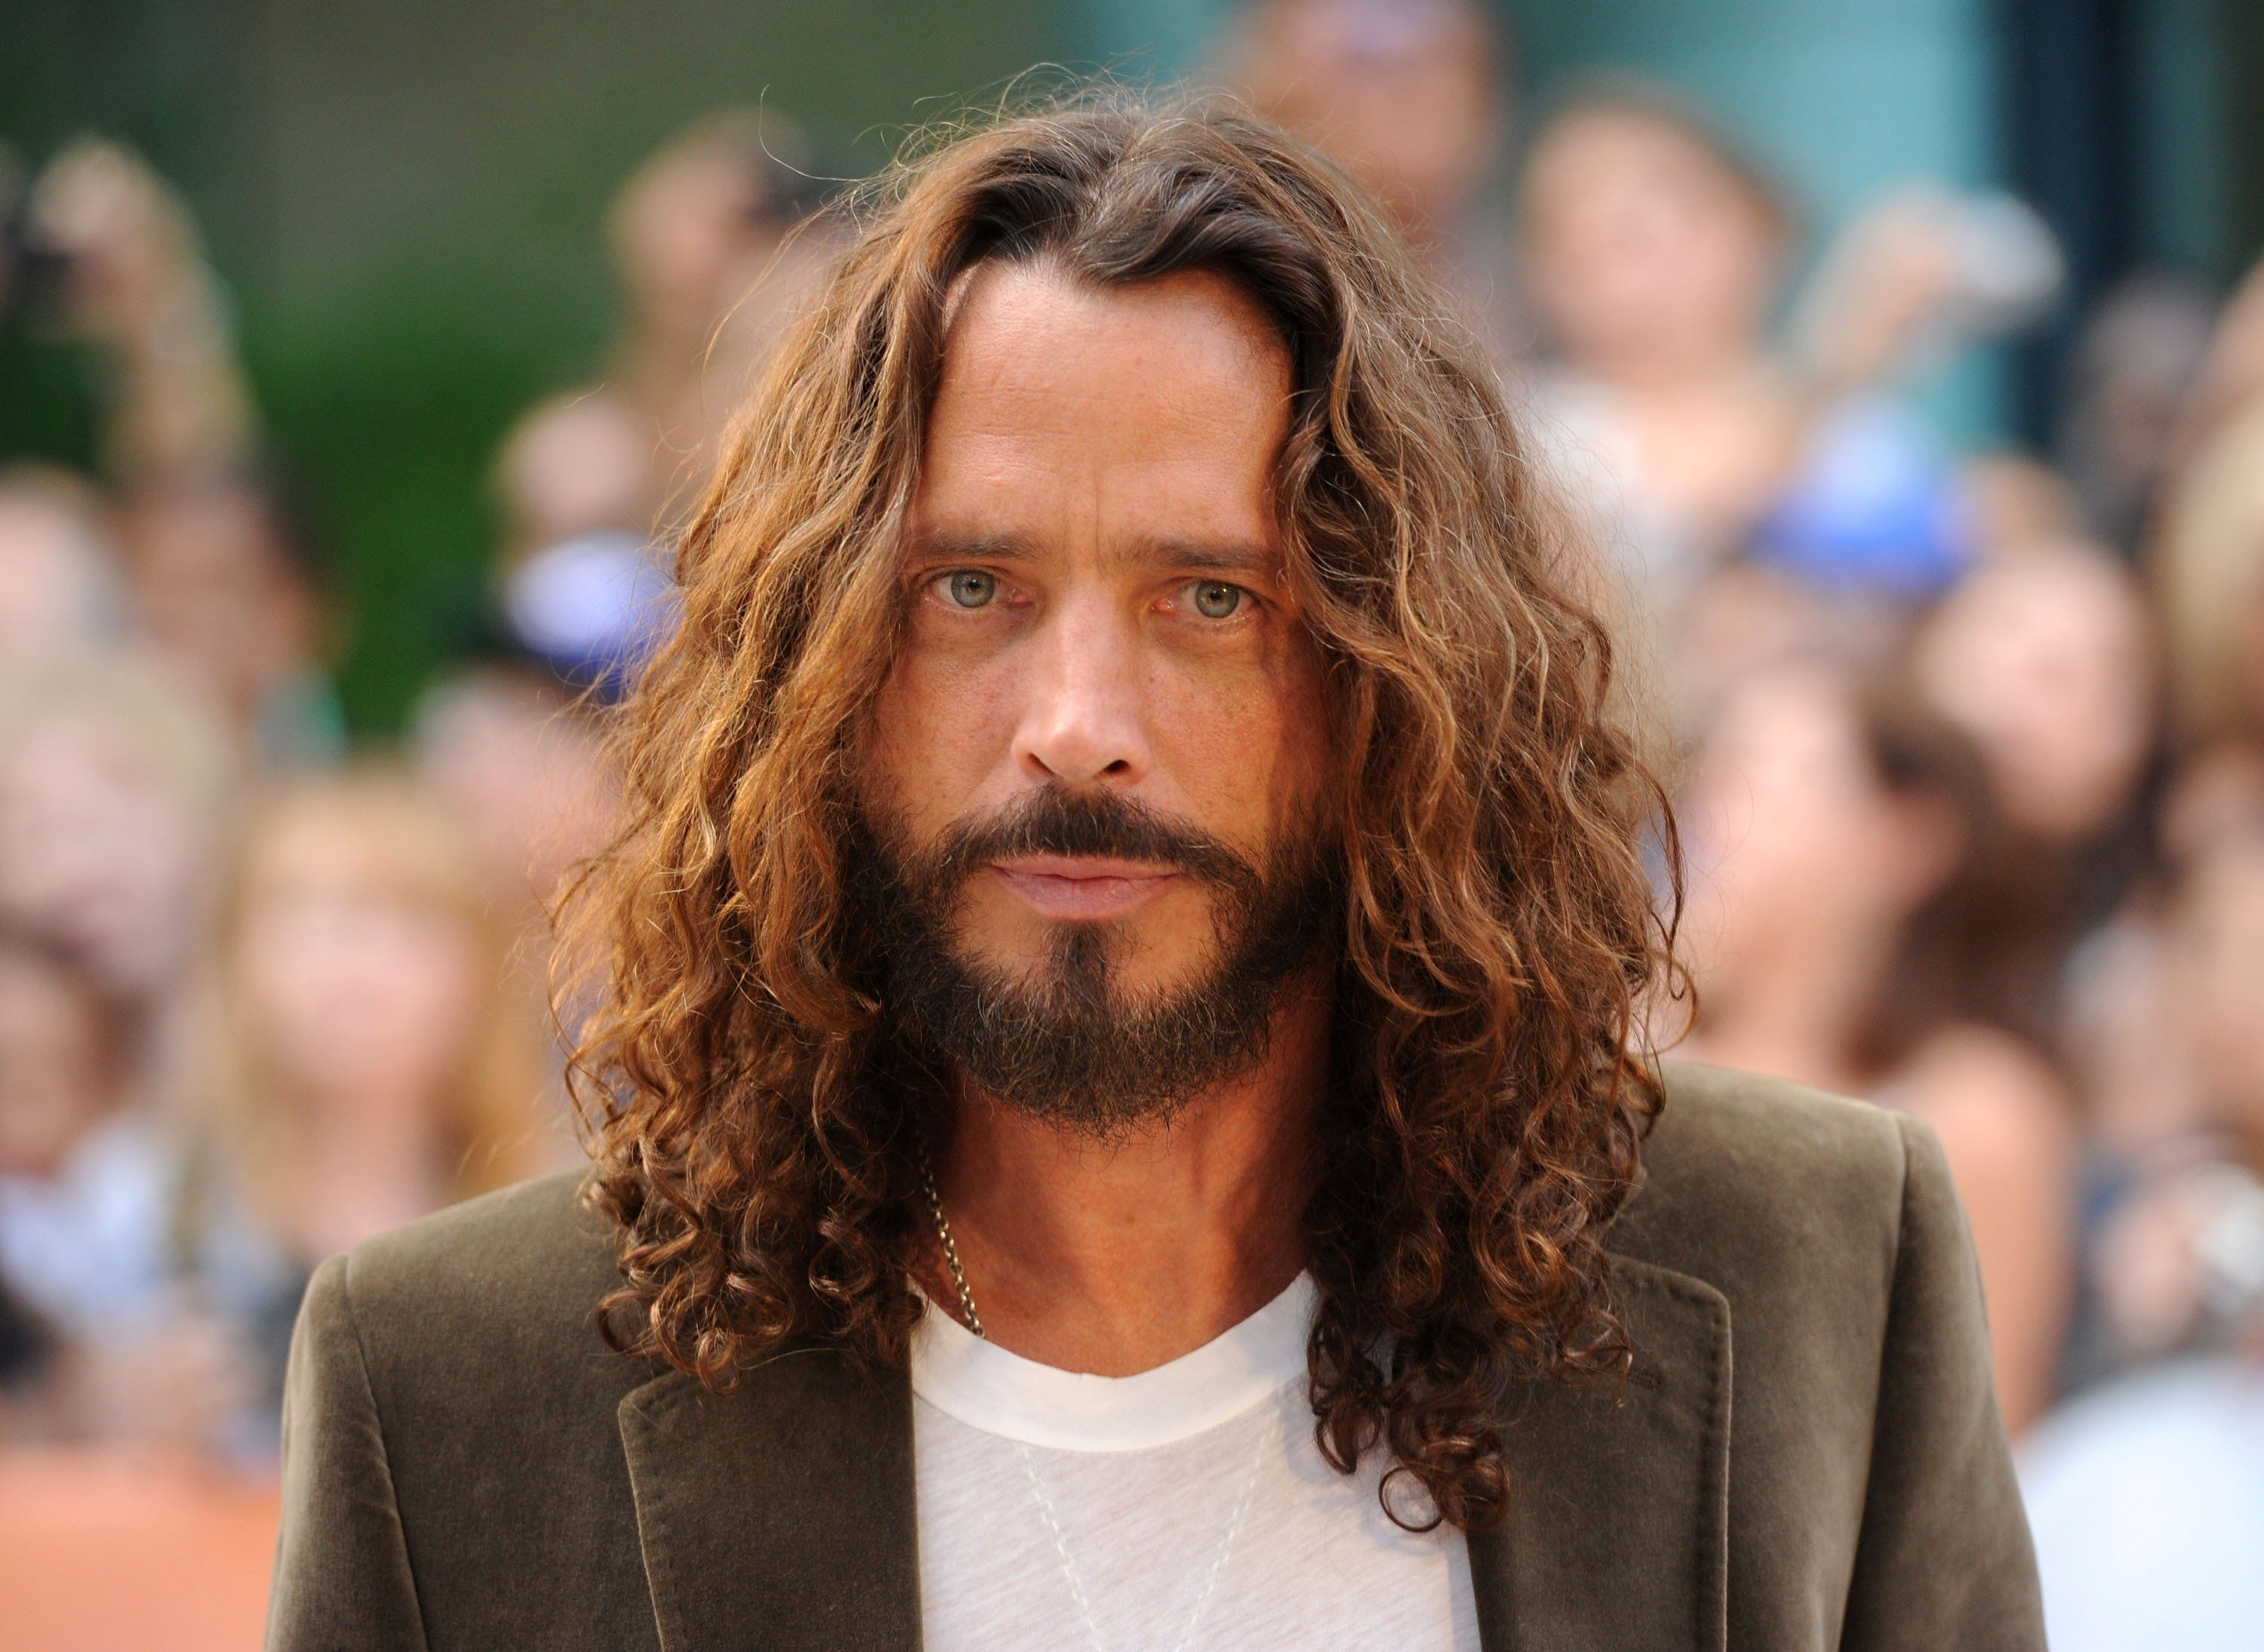 Chris Cornell's Wife Knew Something Was Wrong: Report